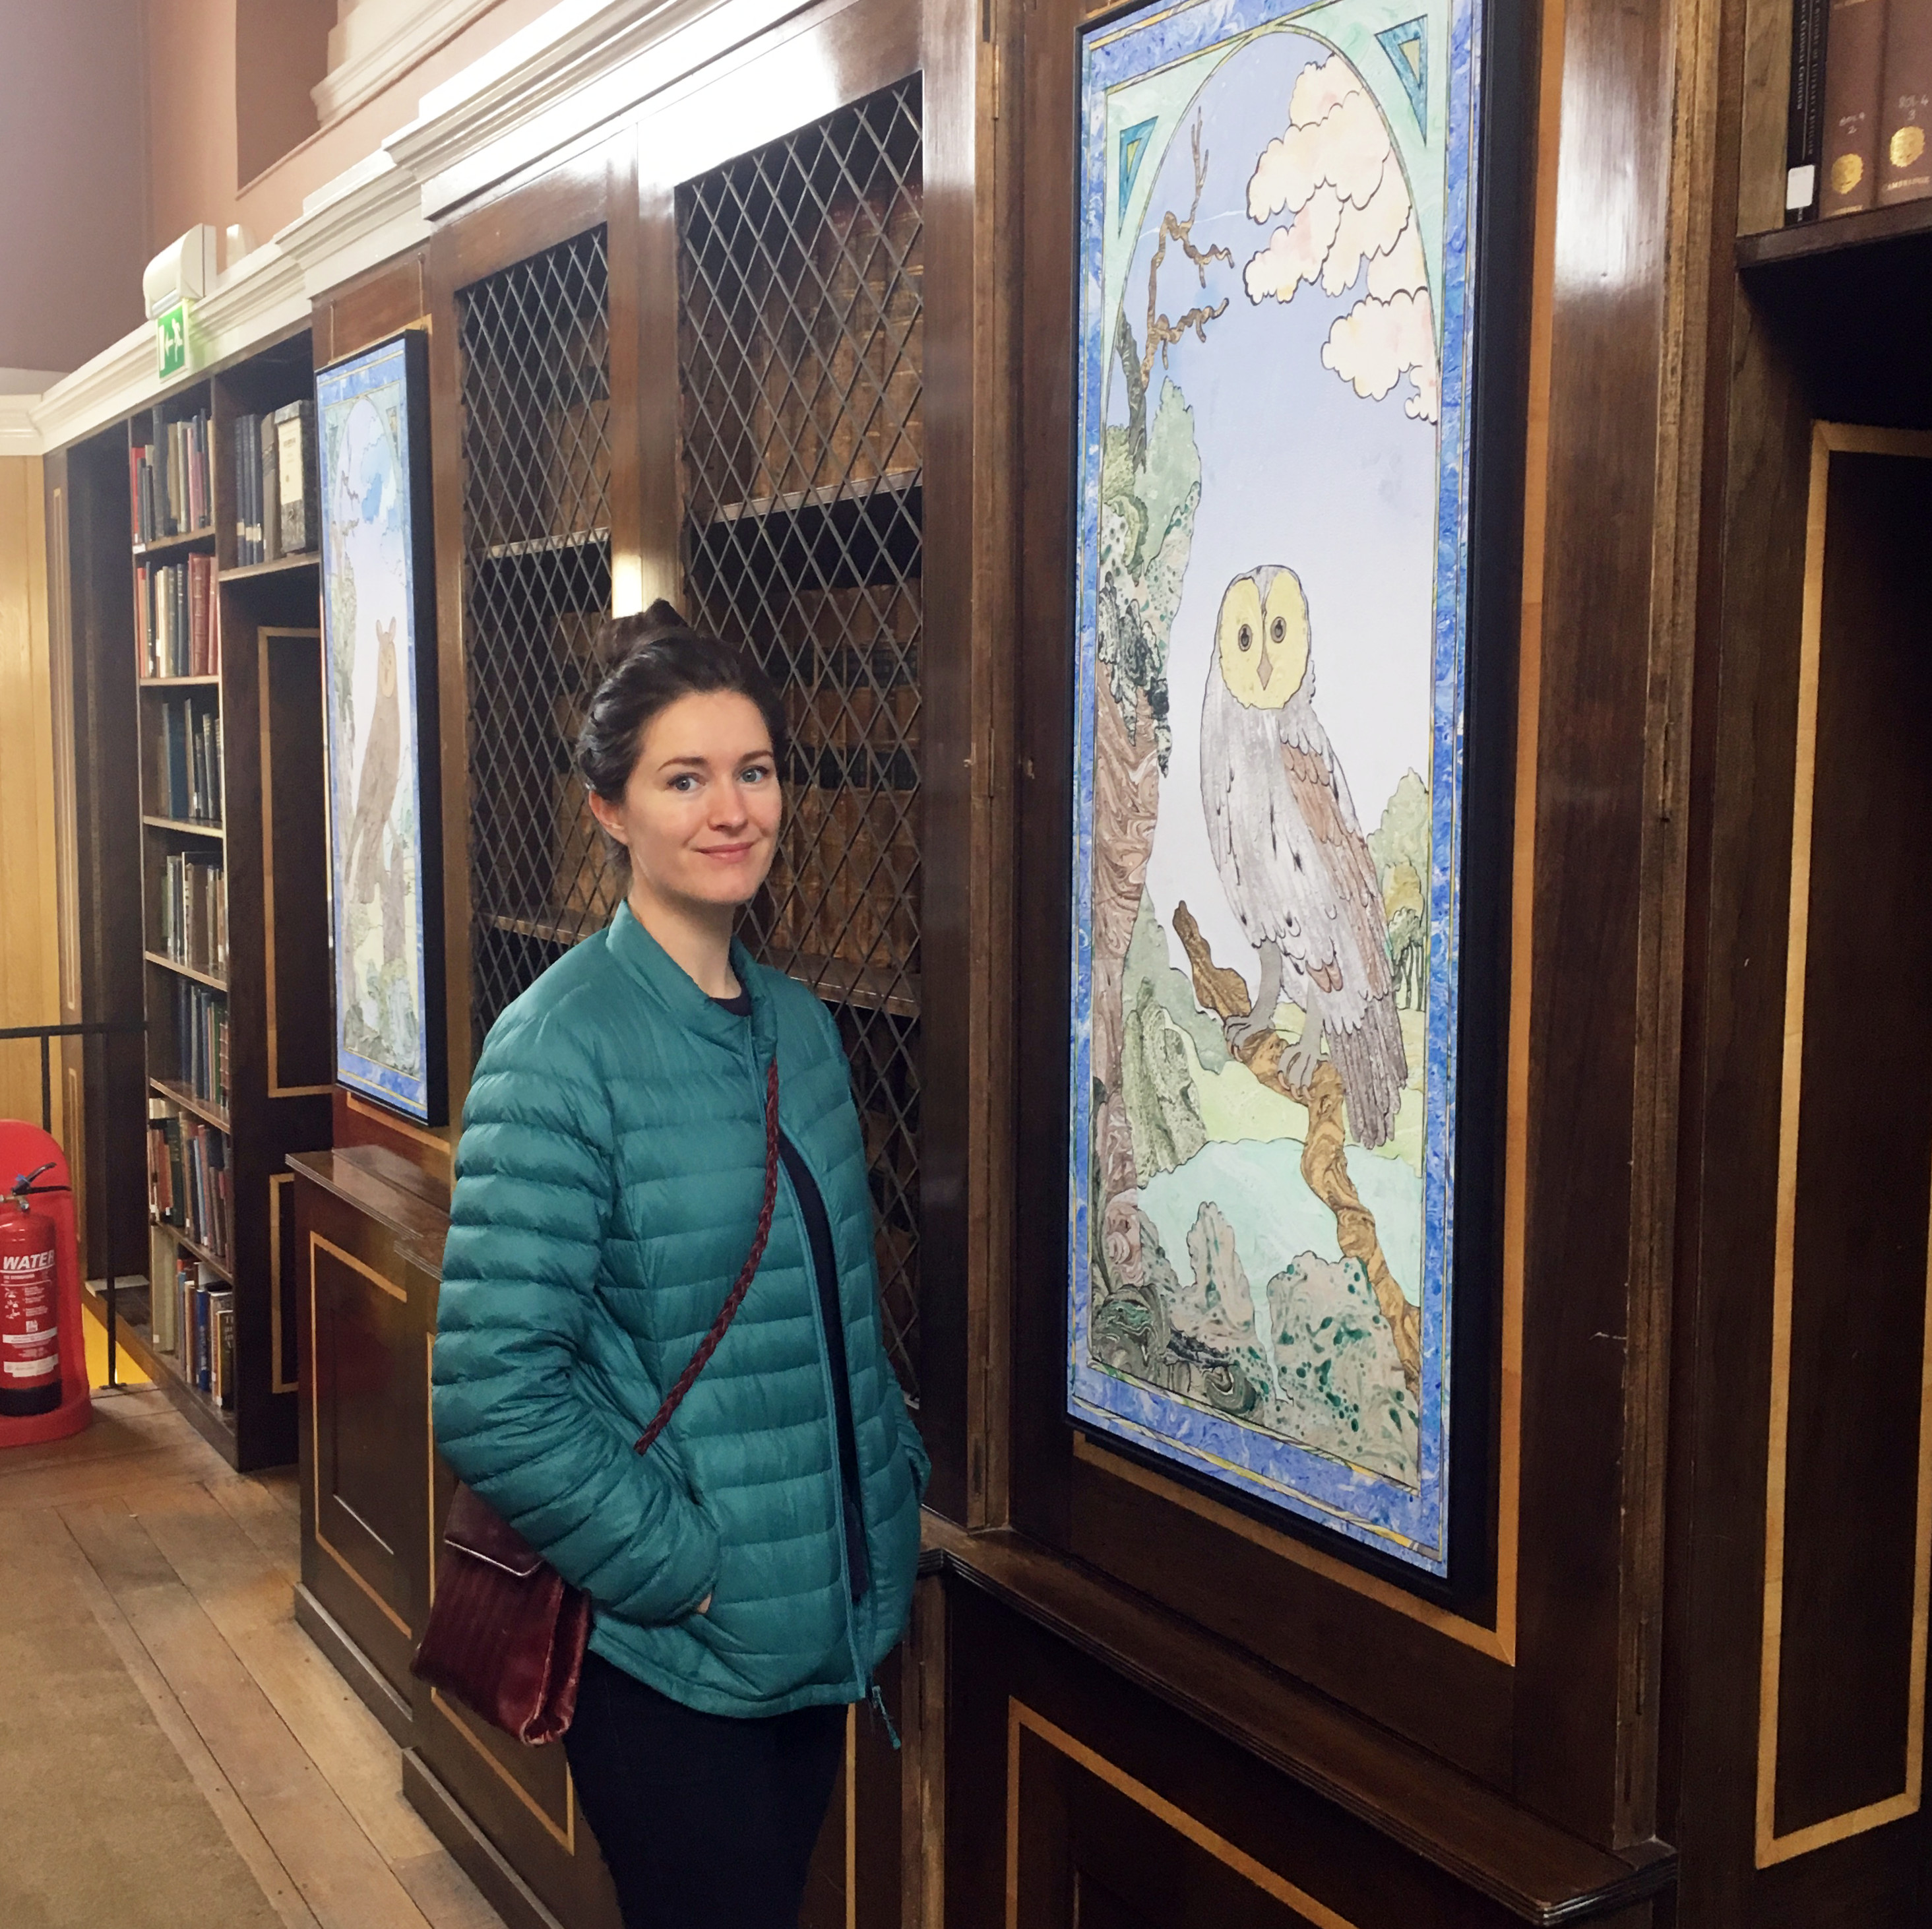 The artist, Erin Hughes, standing next to one of the collages installed in LMH Library